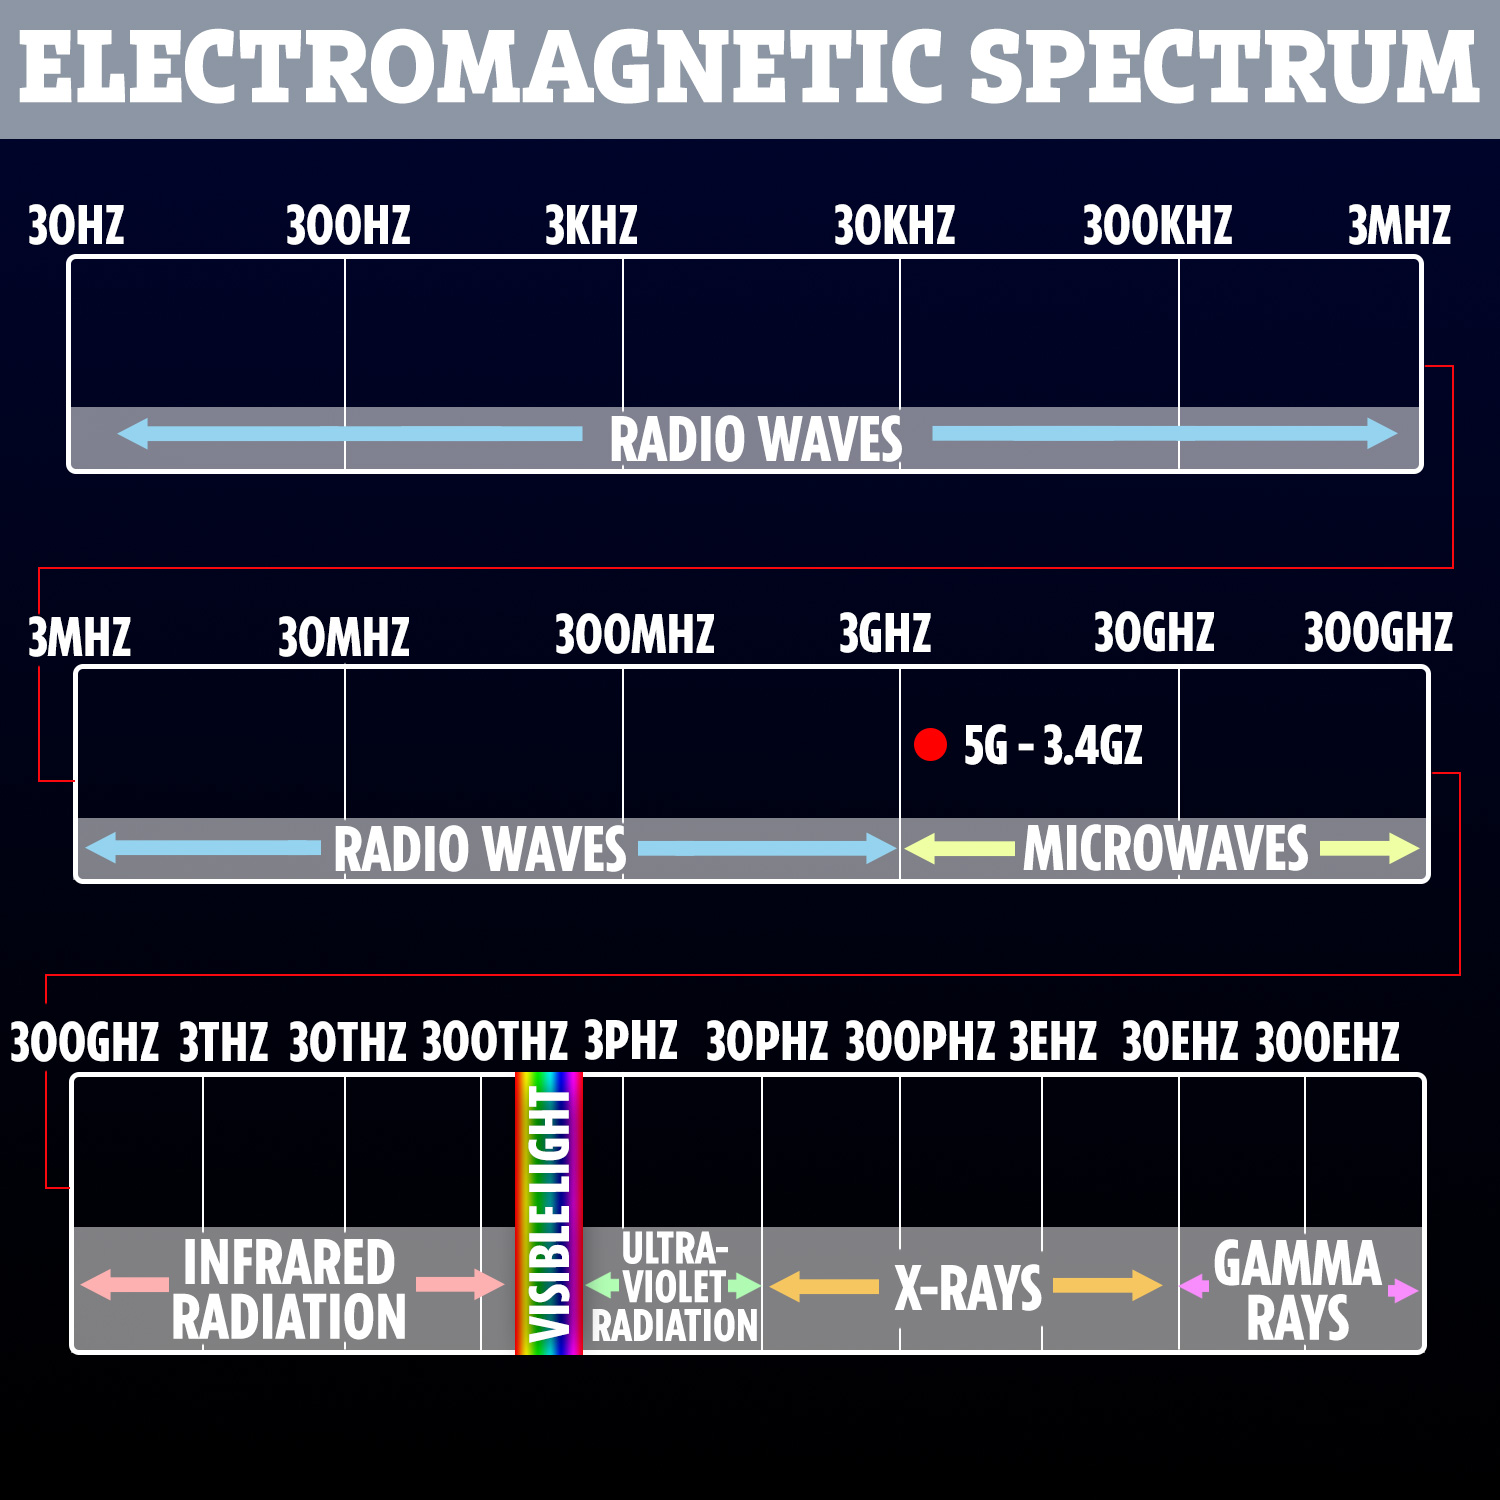 5g frequency what type of radiation